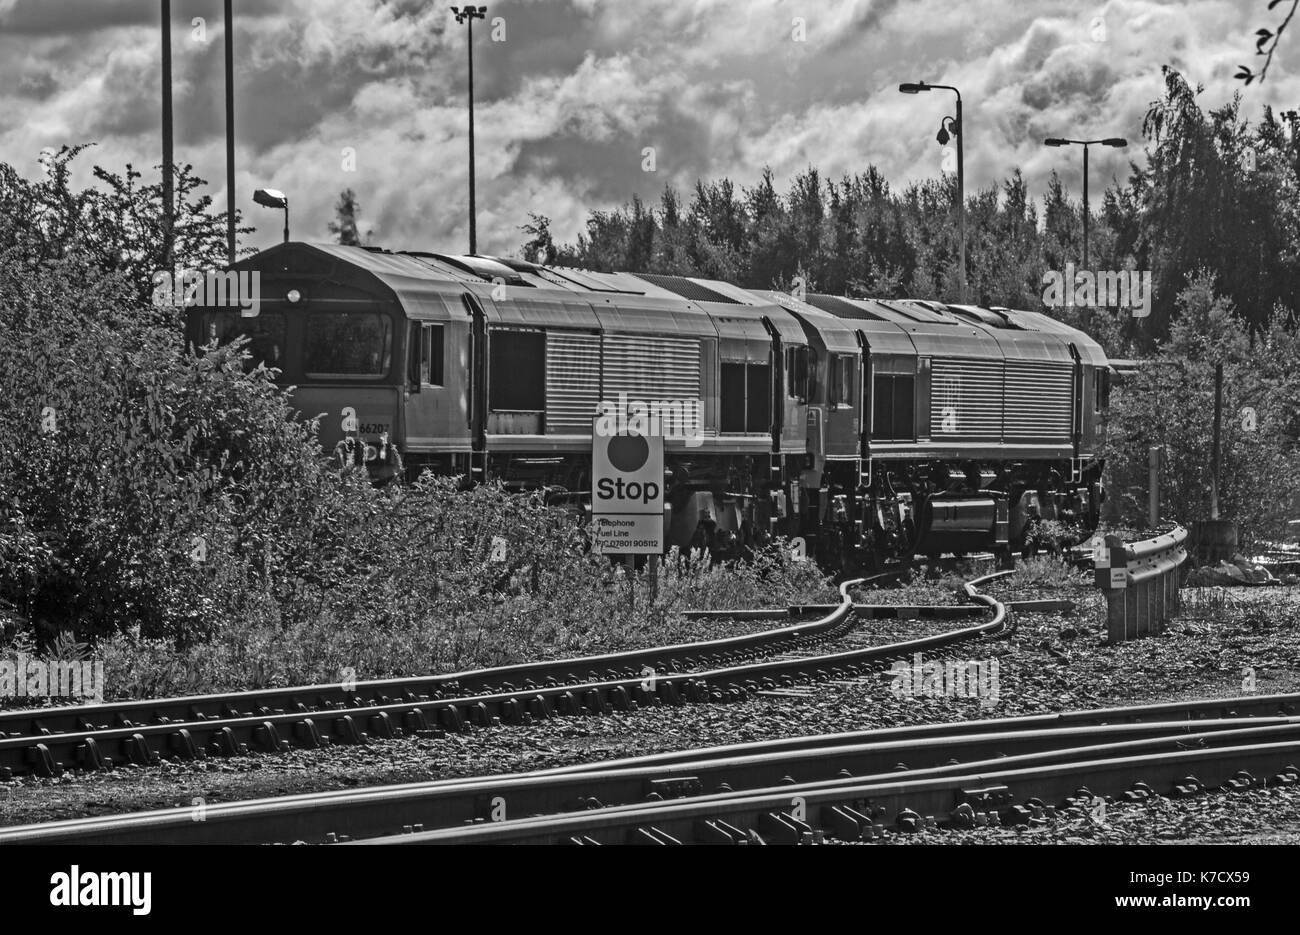 Toton TMD (Notts) - Stock Image